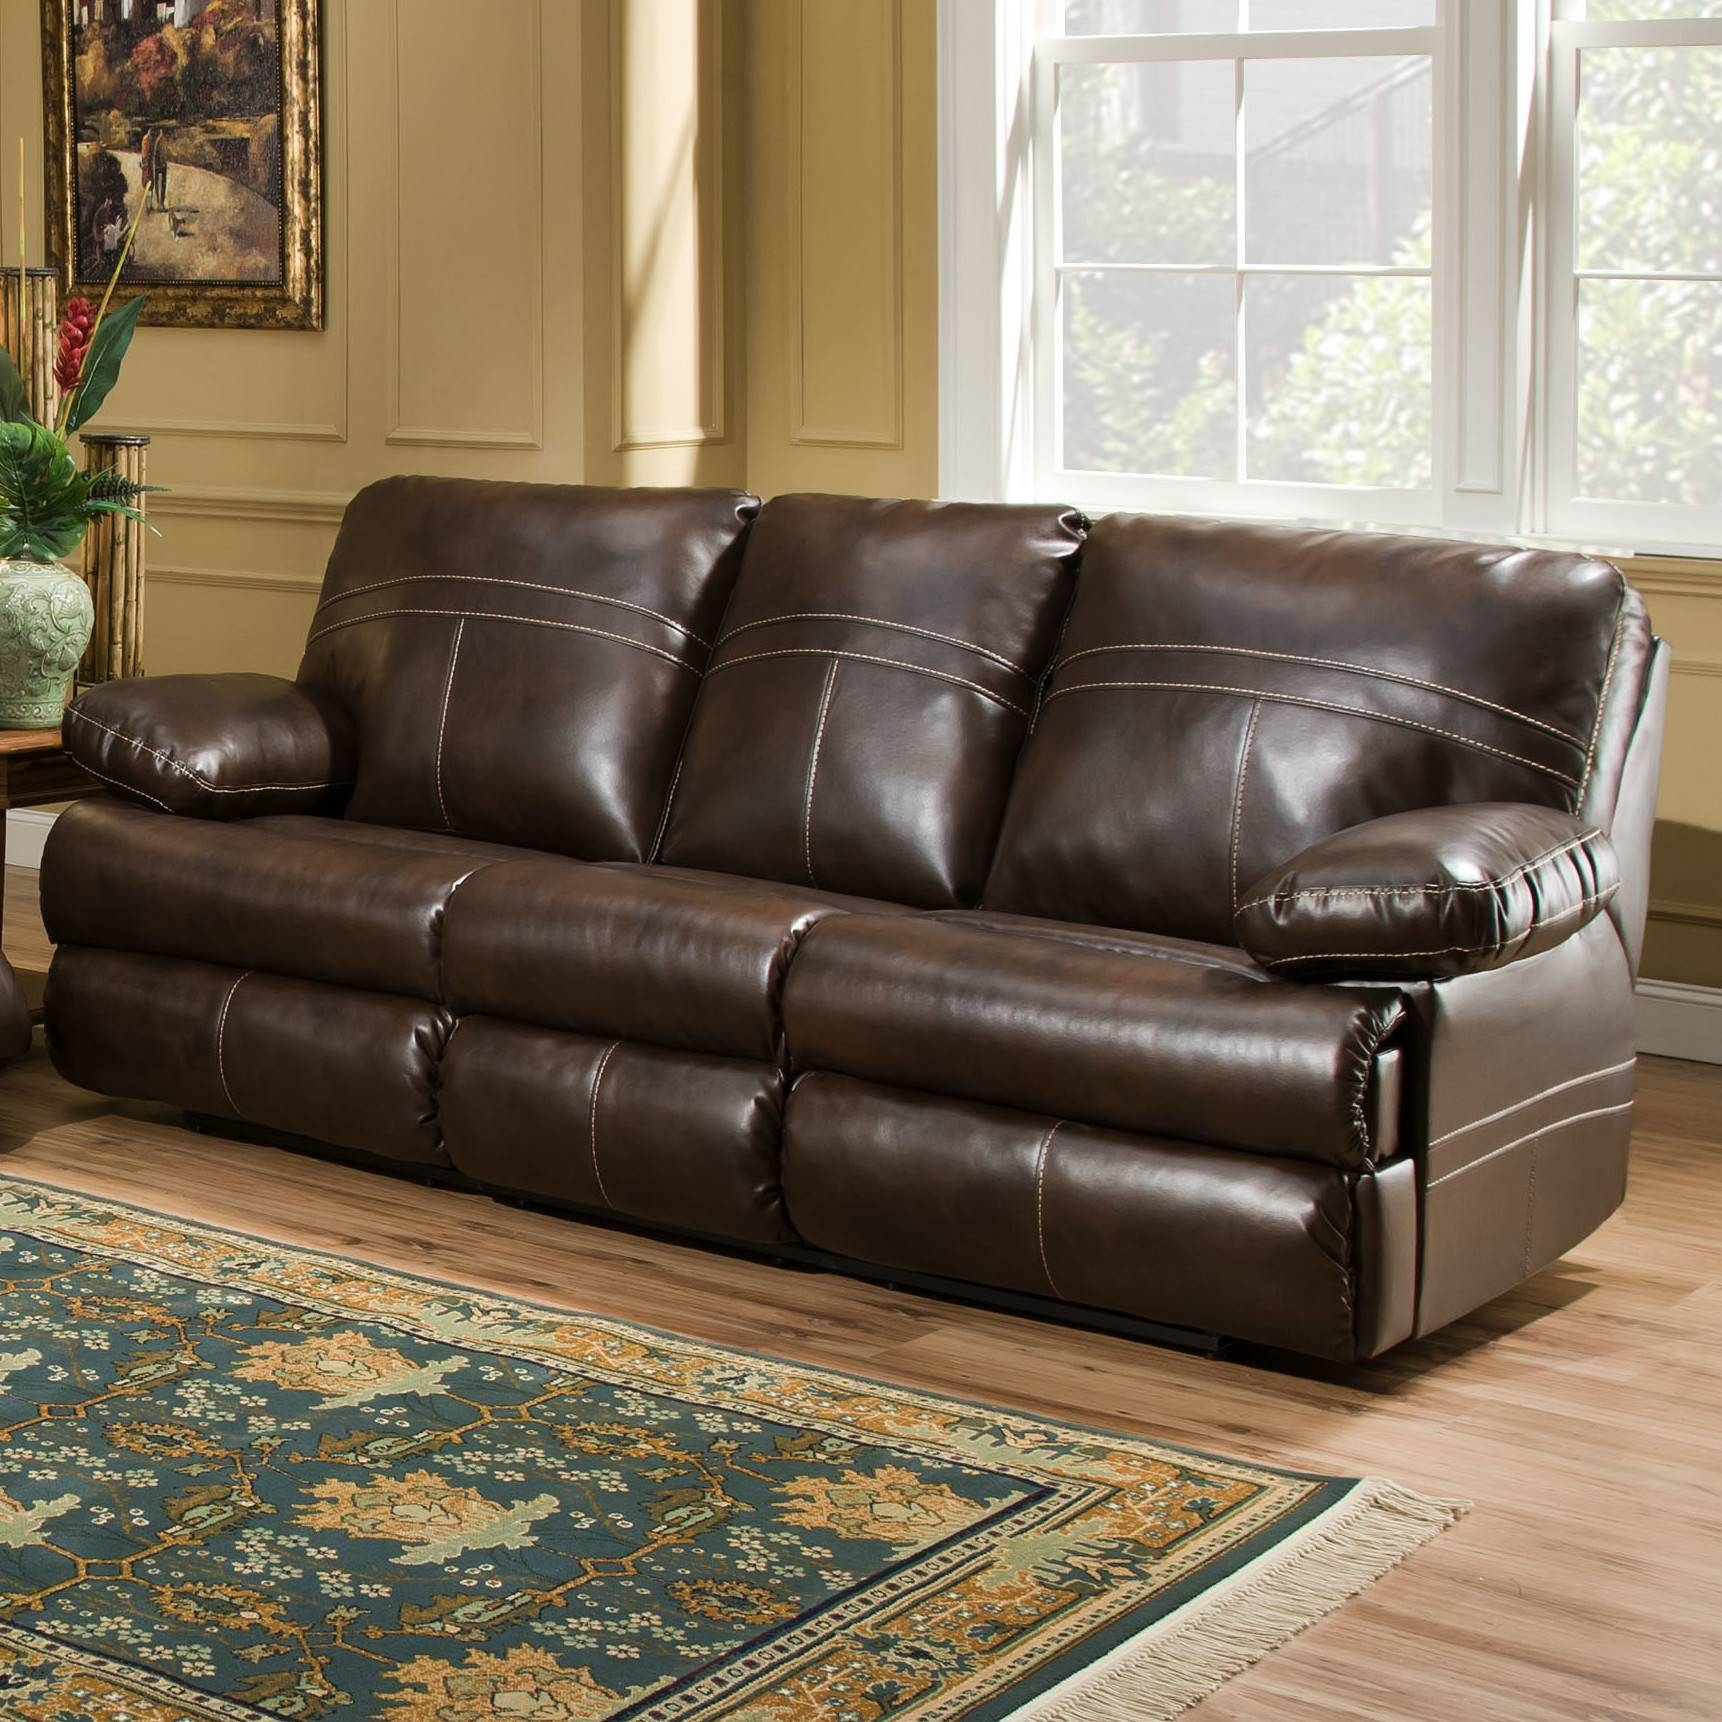 Furniture & Rug: Fancy Sectional Sleeper Sofa For Best Home Throughout King Size Sleeper Sofa Sectional (View 3 of 30)